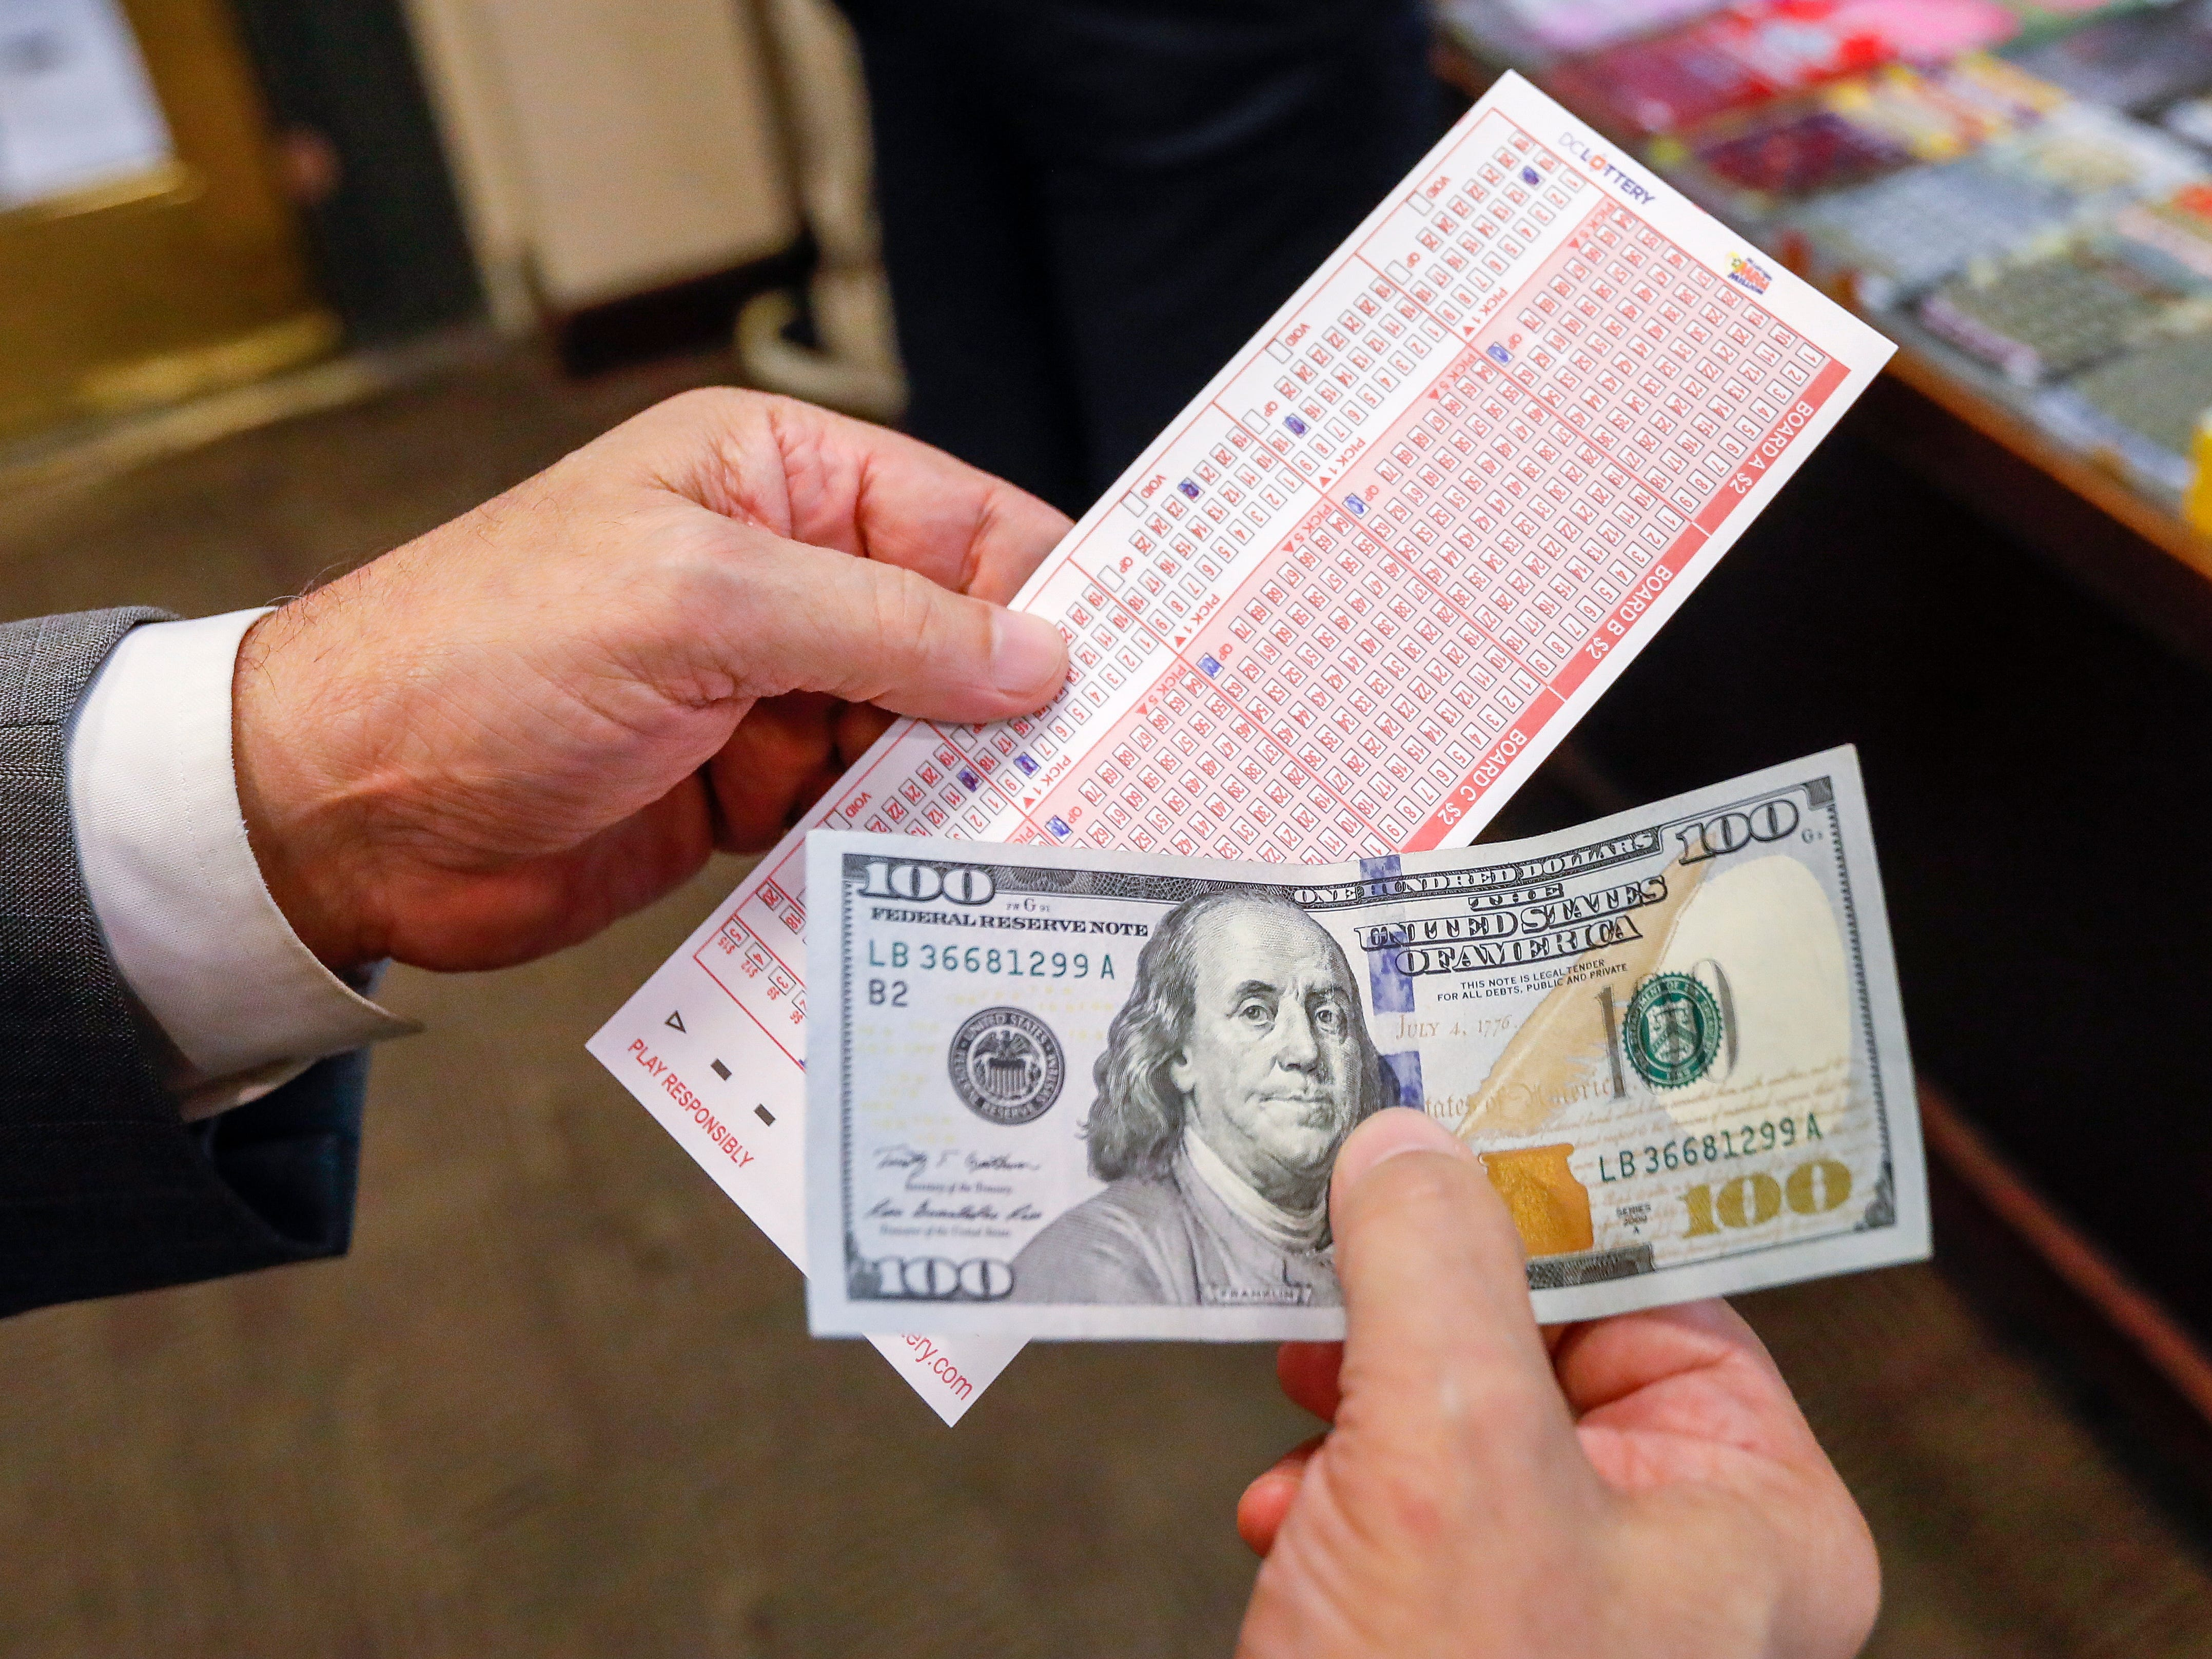 A buyer prepares to purchase Mega Millions lottery tickets at a retailer in Washington, D.C.,  Oct. 22, 2018.